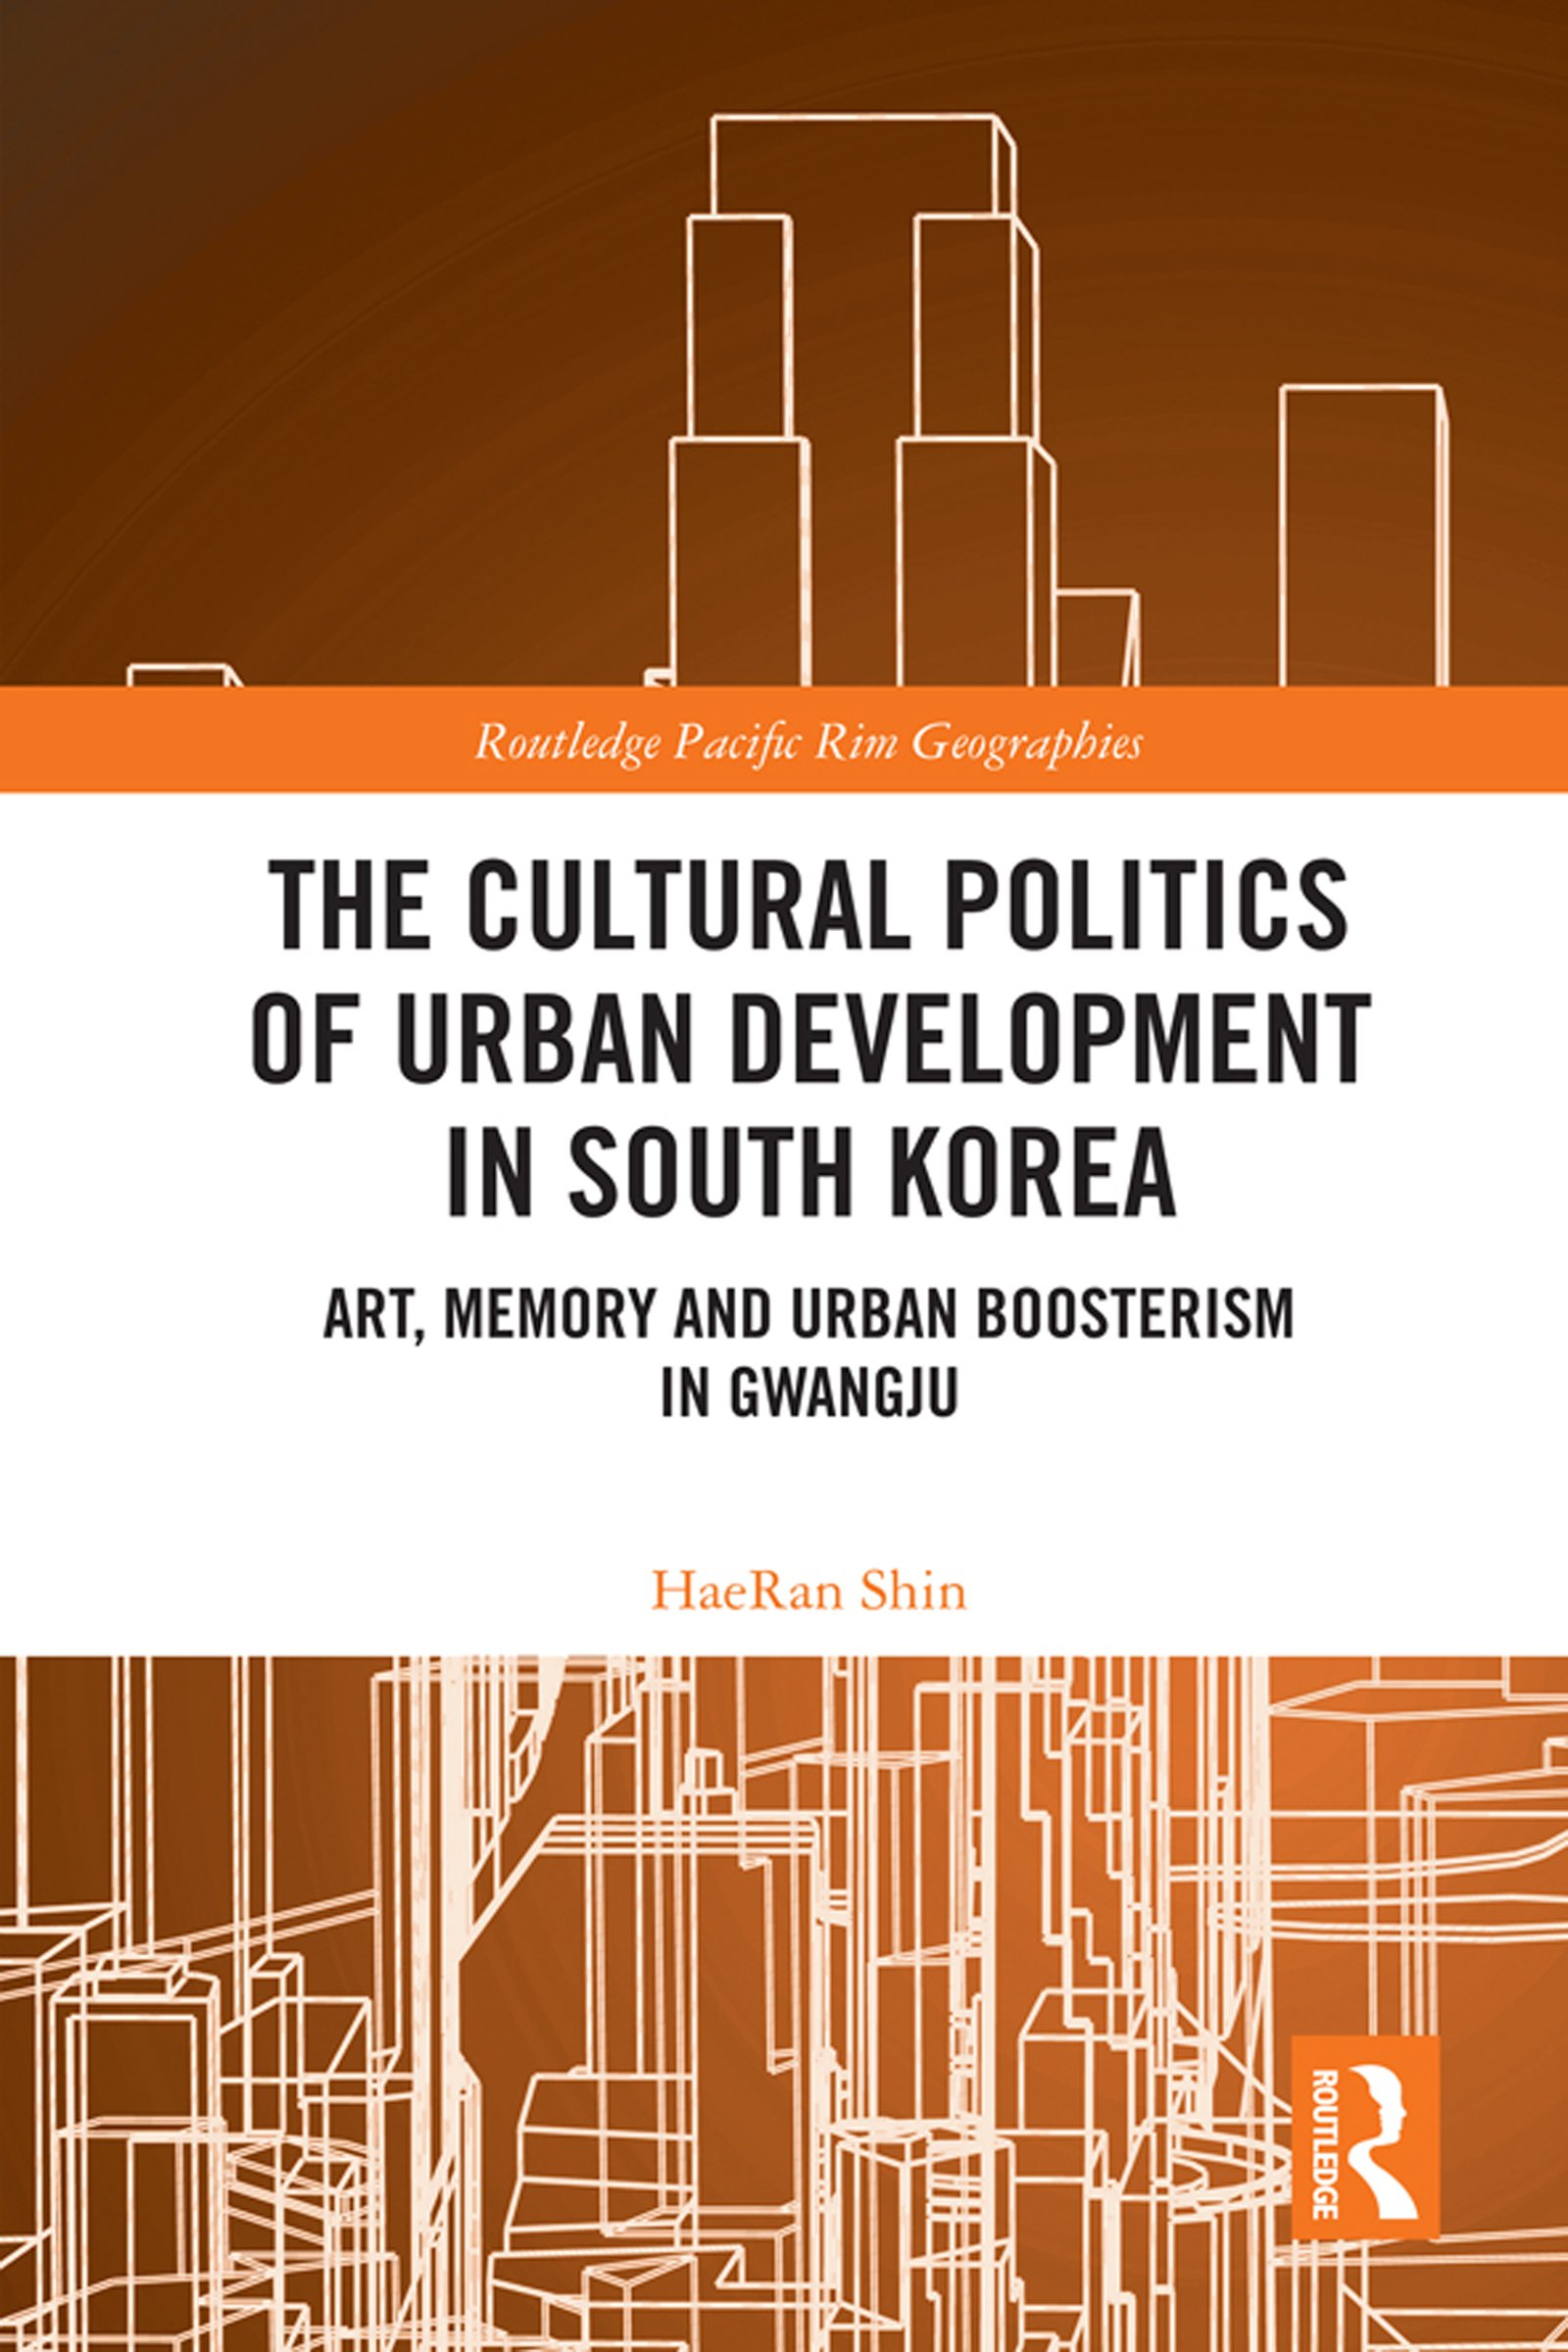 The Cultural Politics of Urban Development in South Korea: Art, Memory and Urban Boosterism in Gwangju book cover